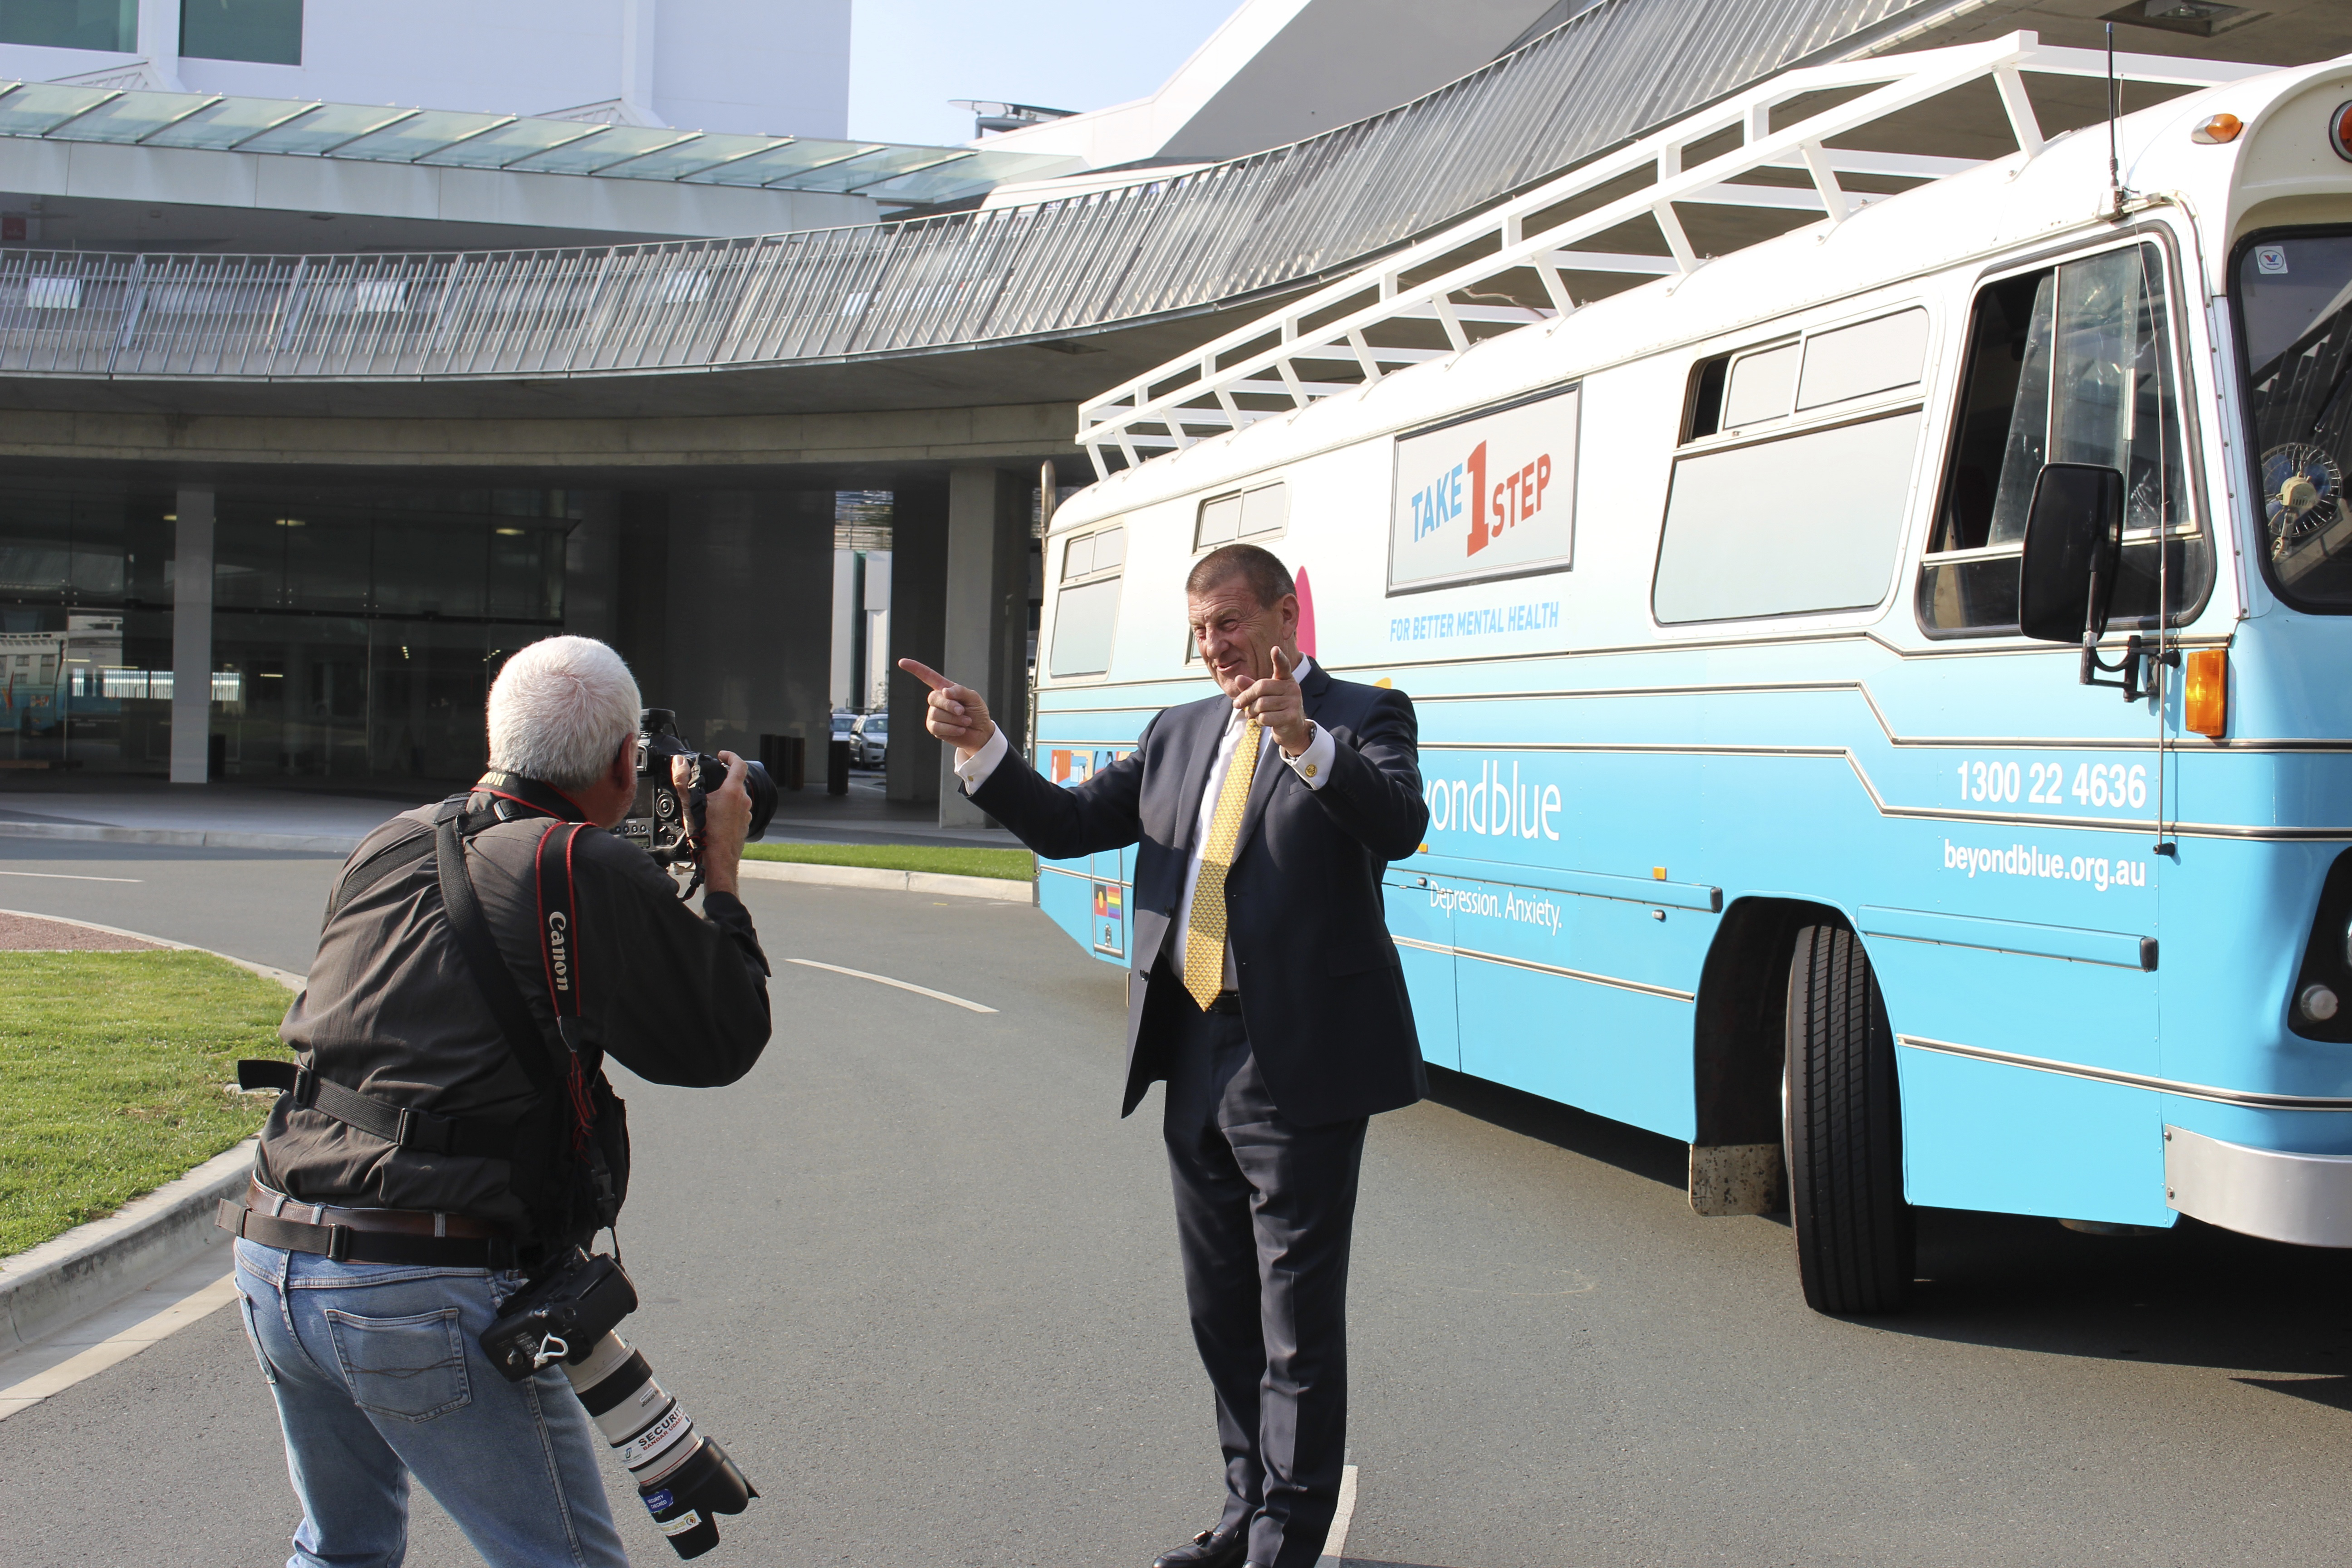 Beyond Blue Chairman Jeff Kennett greets the bus at Canberra Airport